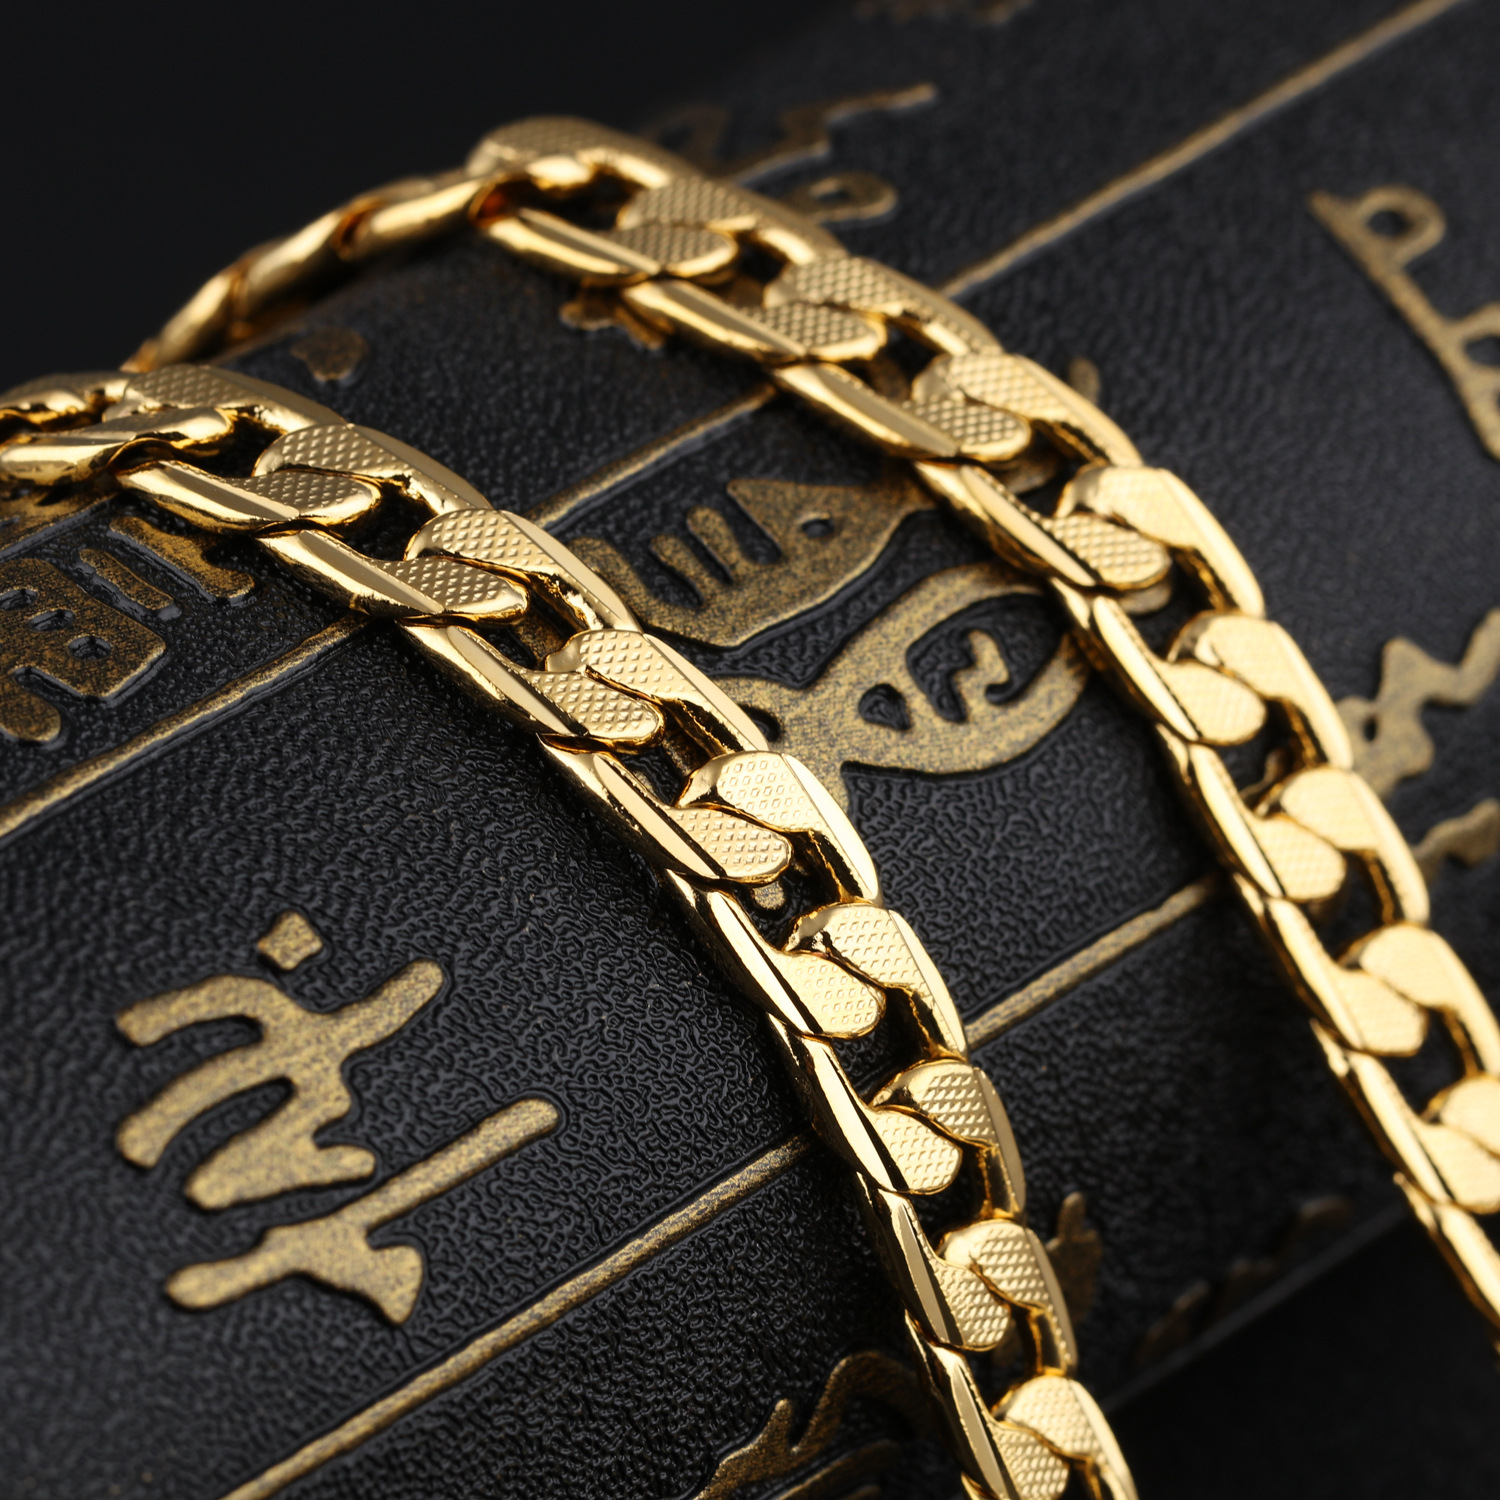 New jewelry copper plating gold men's twisted necklace cross-border men's thick single chain NHOP178150